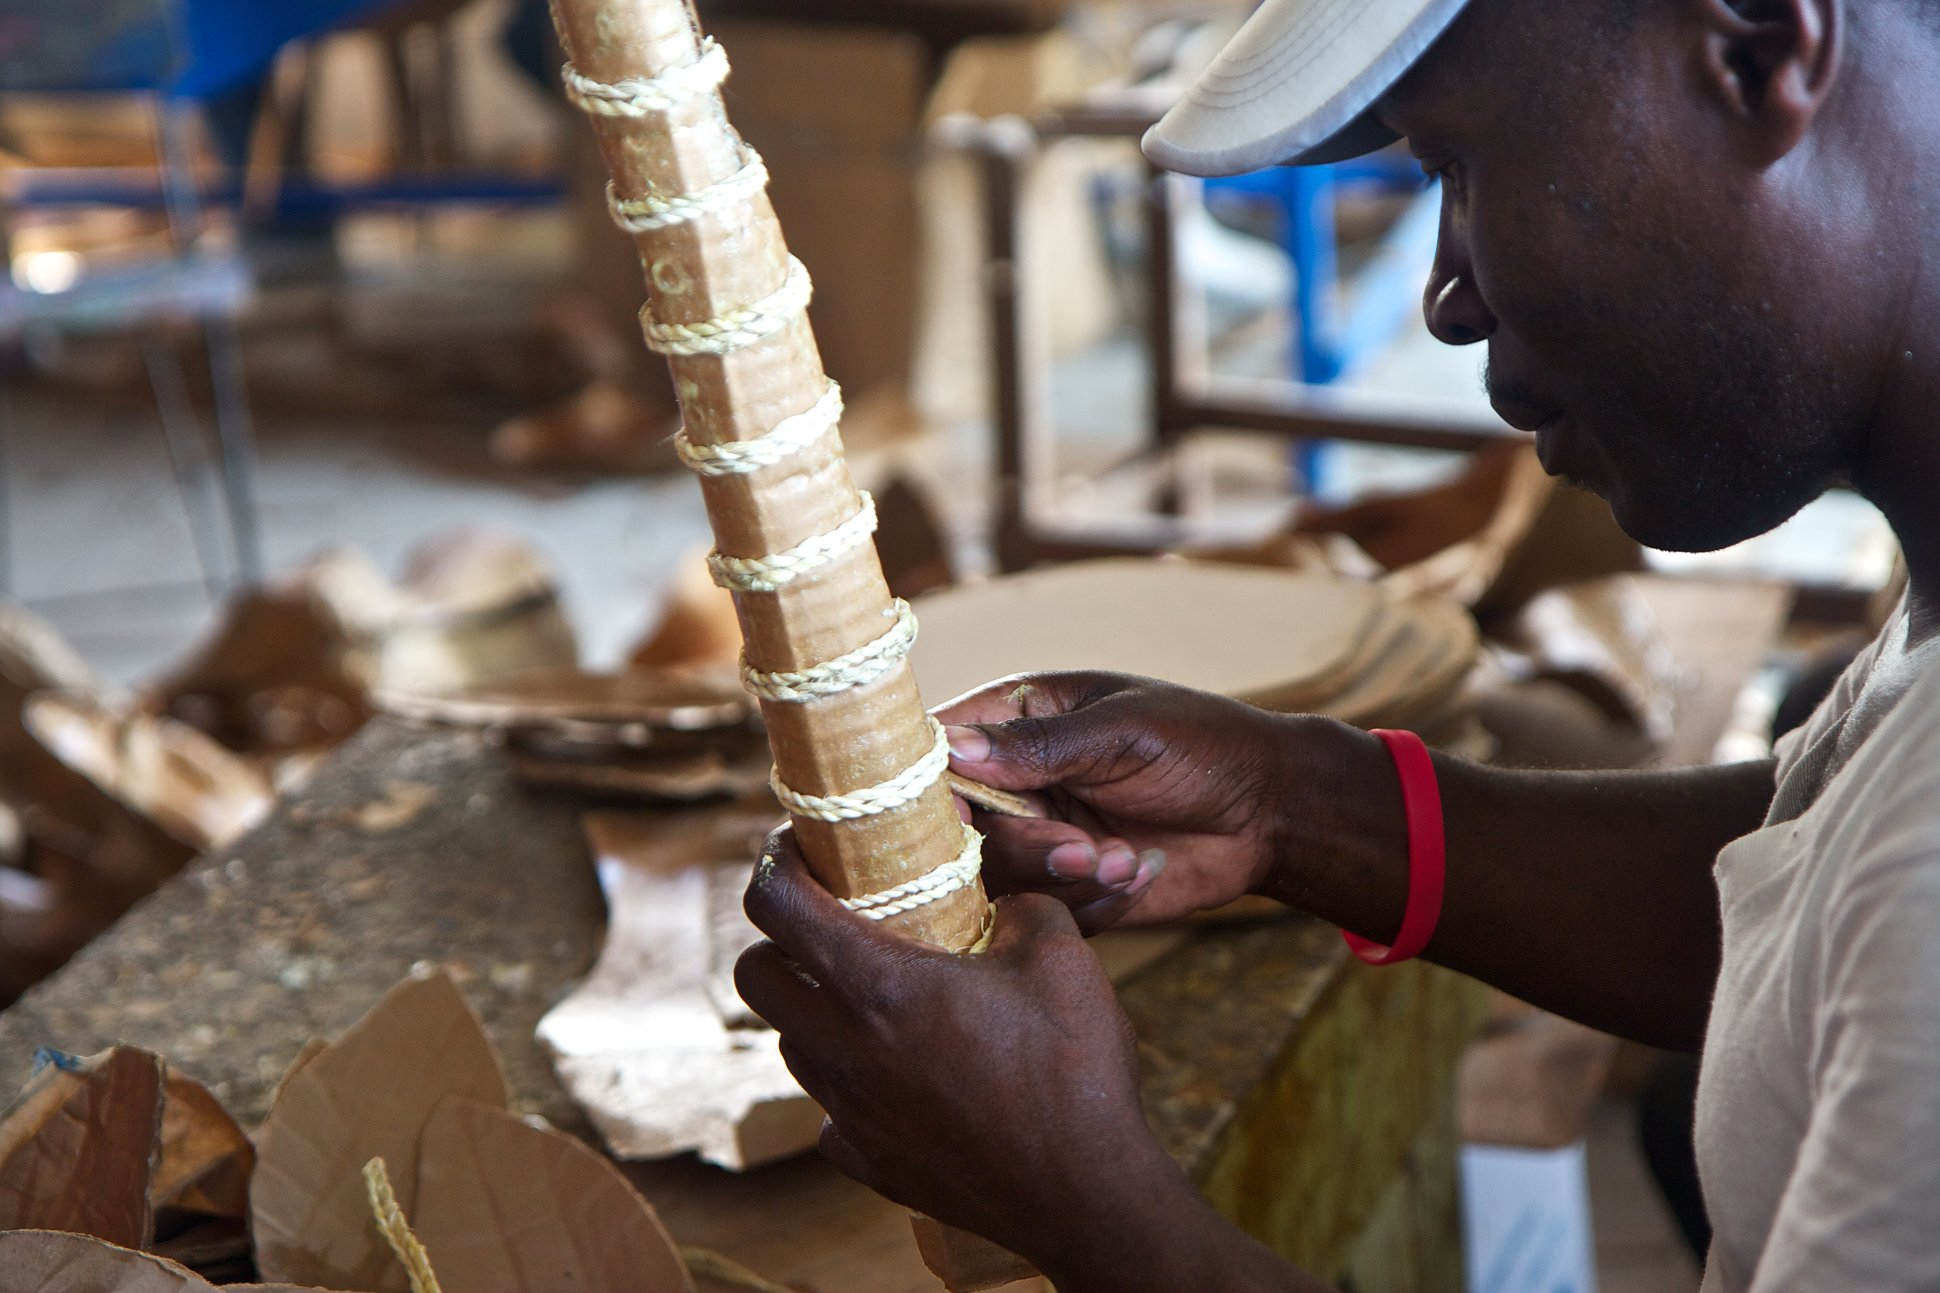 Jean, an artisan of Caribbean Craft, is adjusting the sisal cords used in the horns of the paper mache Impala. Picture by Nadia Todres